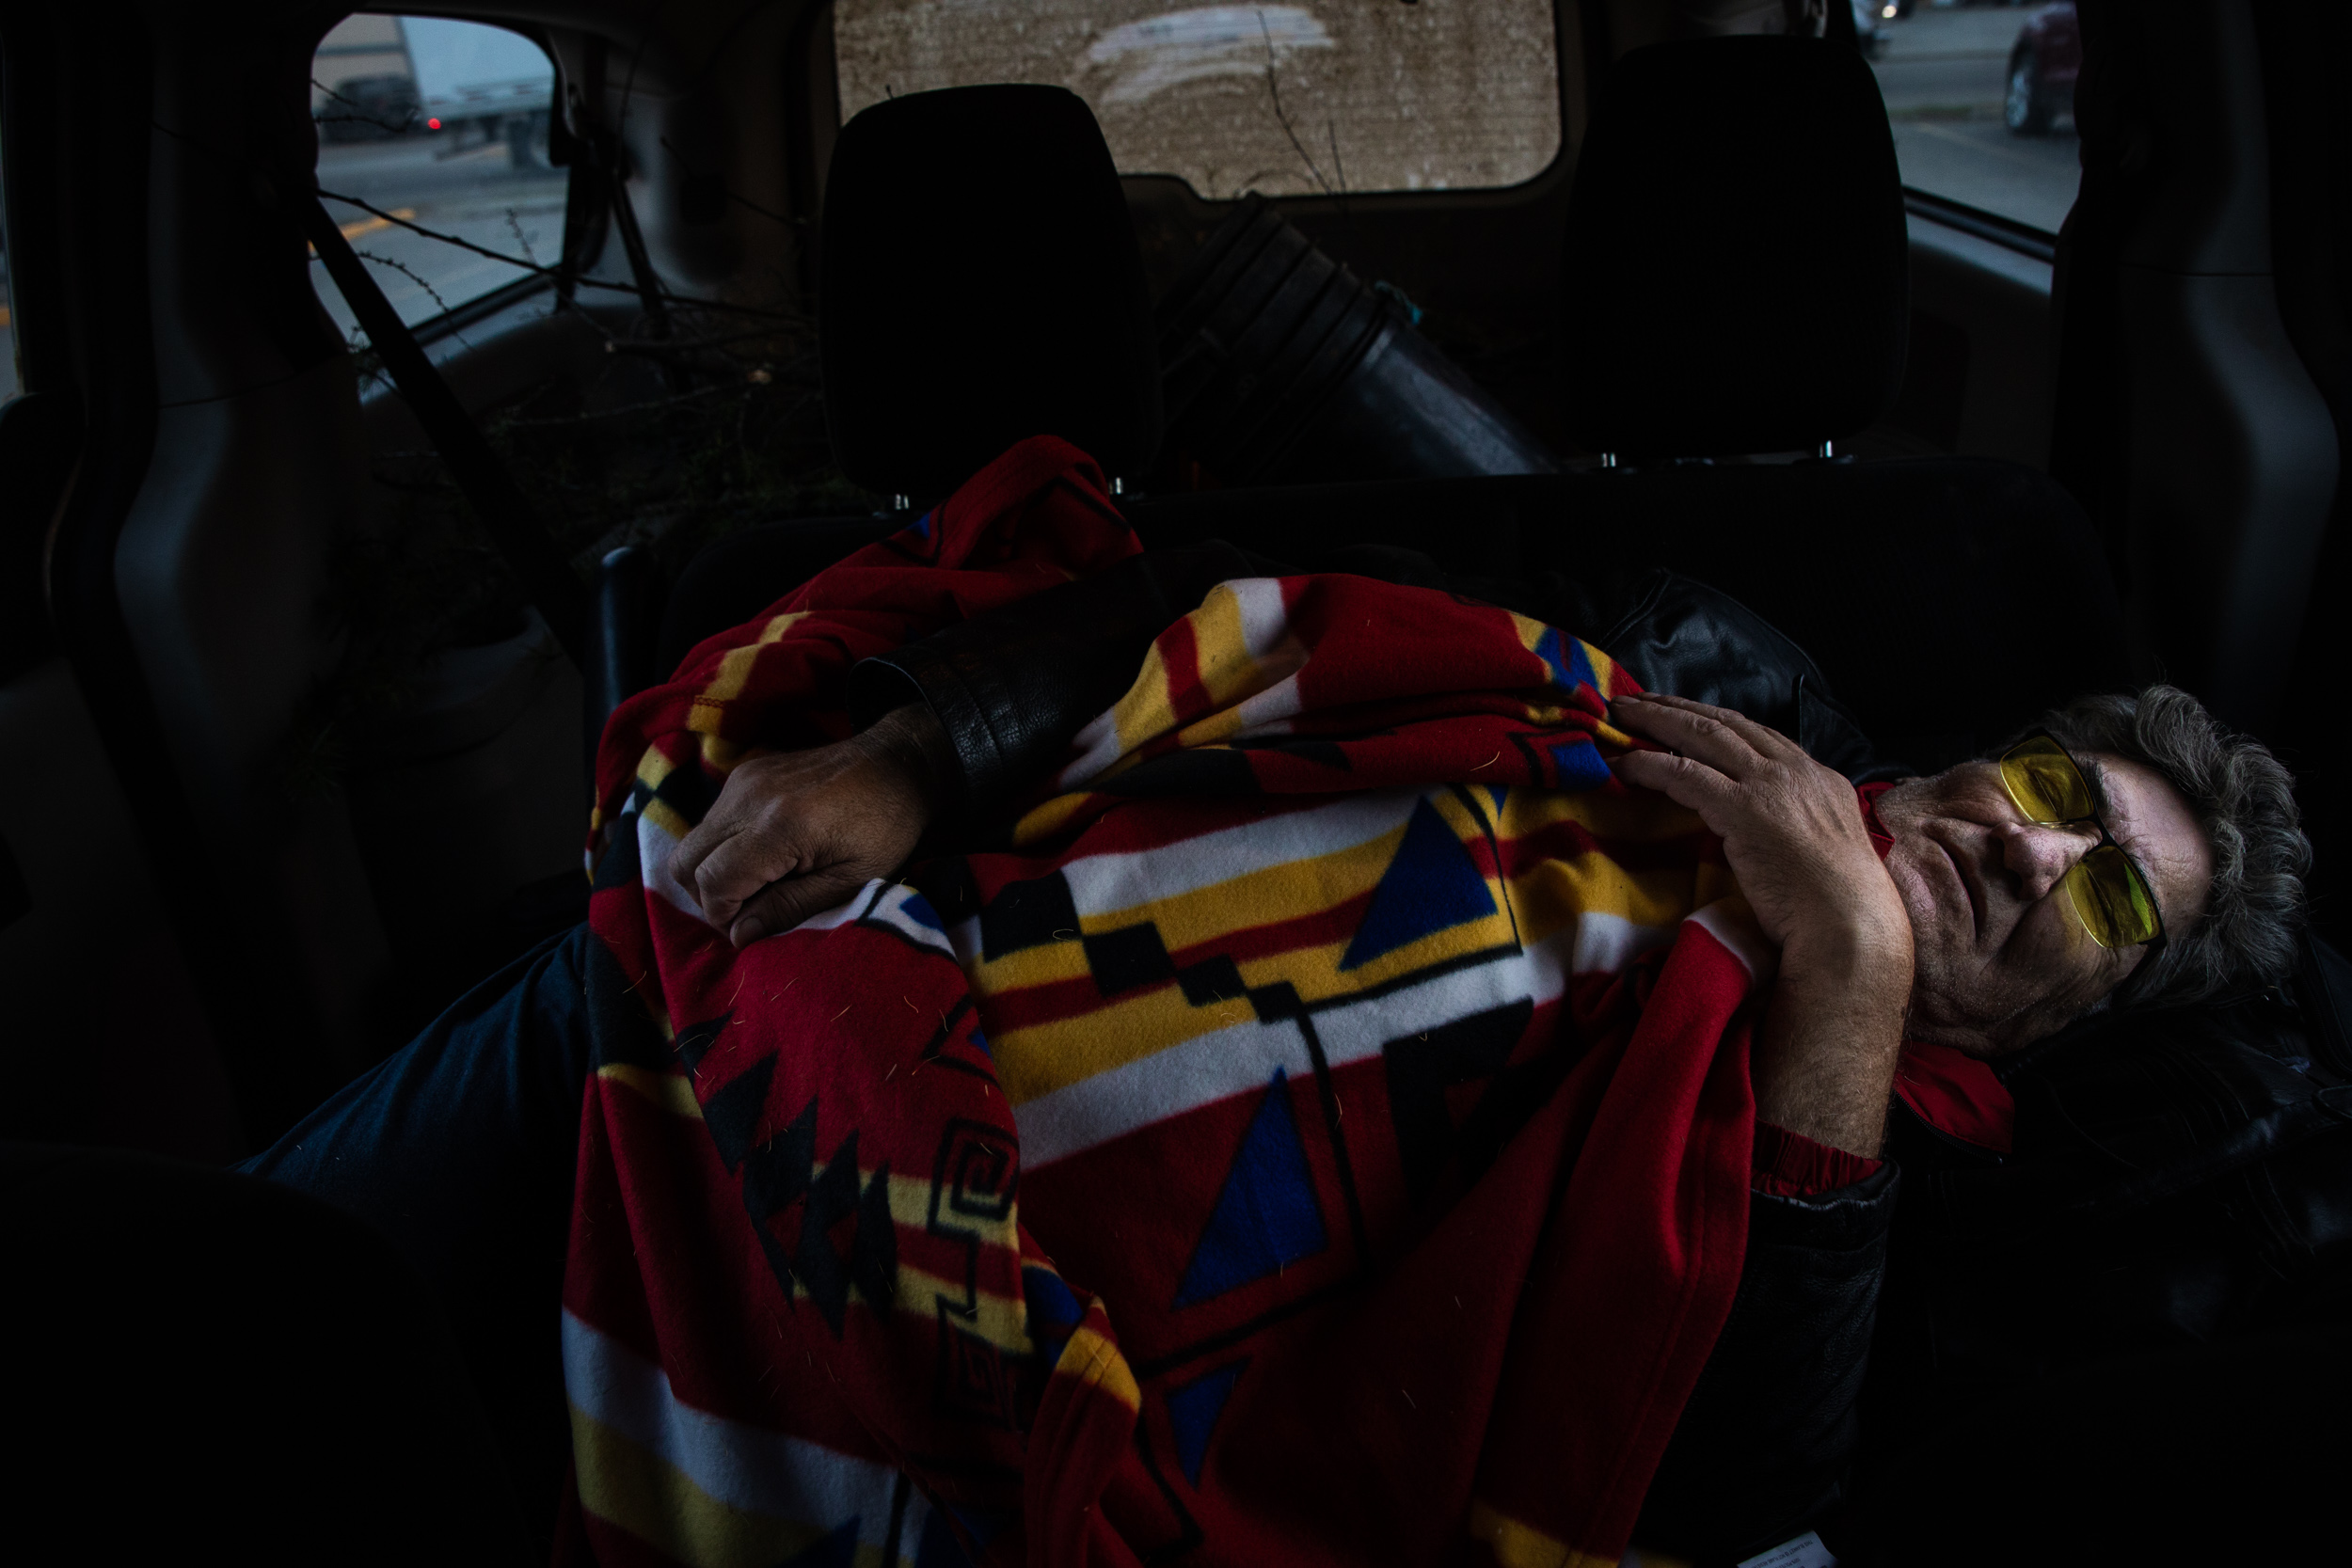 "Russell Willier, a Cree medicine man, rests in the back of his van after cutting plants to make Thunder Medicine. ""If this doesn't work, I have four months left,"" he said. Russell is battling cancer that started in his bladder, but has spread throughout other parts of his body. After doctoring himself through his initial fight with bladder cancer, Russell is now seeking westernized treatments alongside his medicine, but refuses to use radiation or chemotherapy."